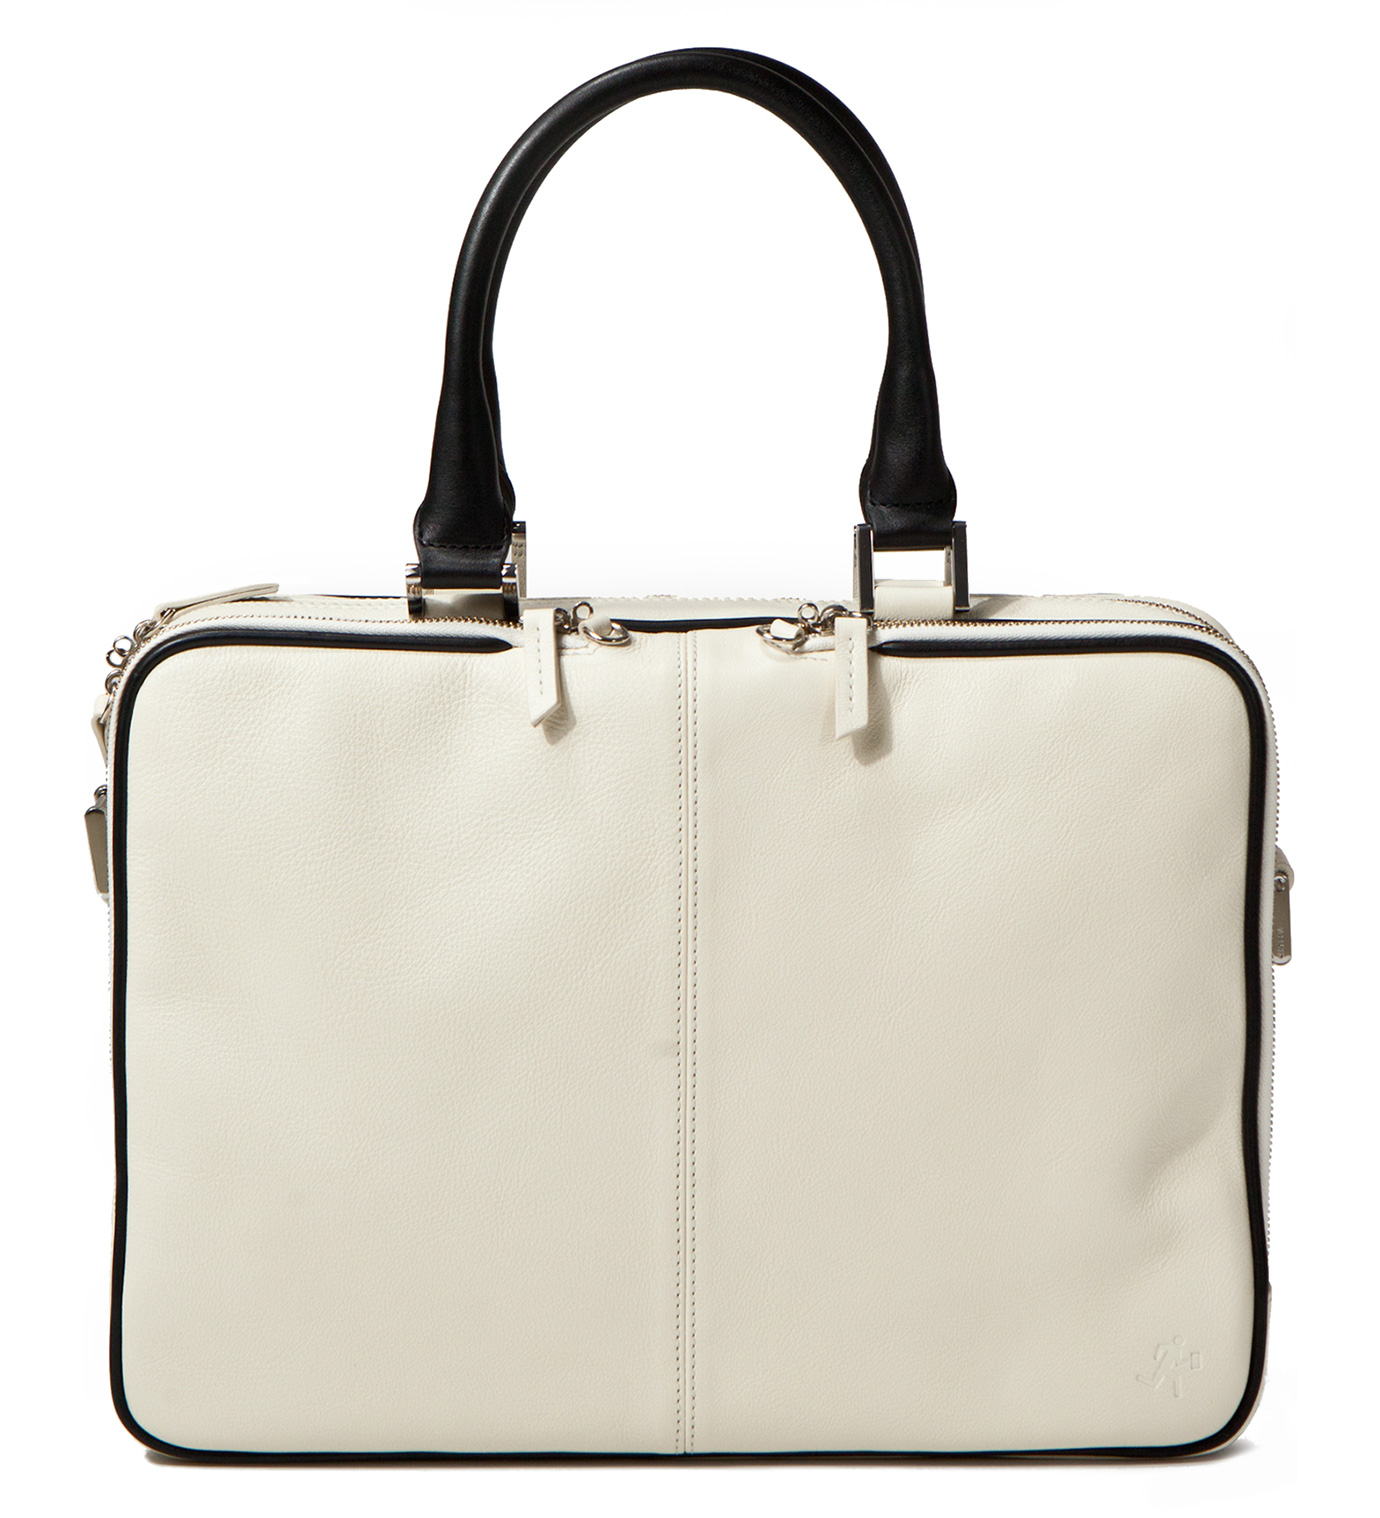 WANT Les Essentiels de la Vie Trudeau Leather Bag